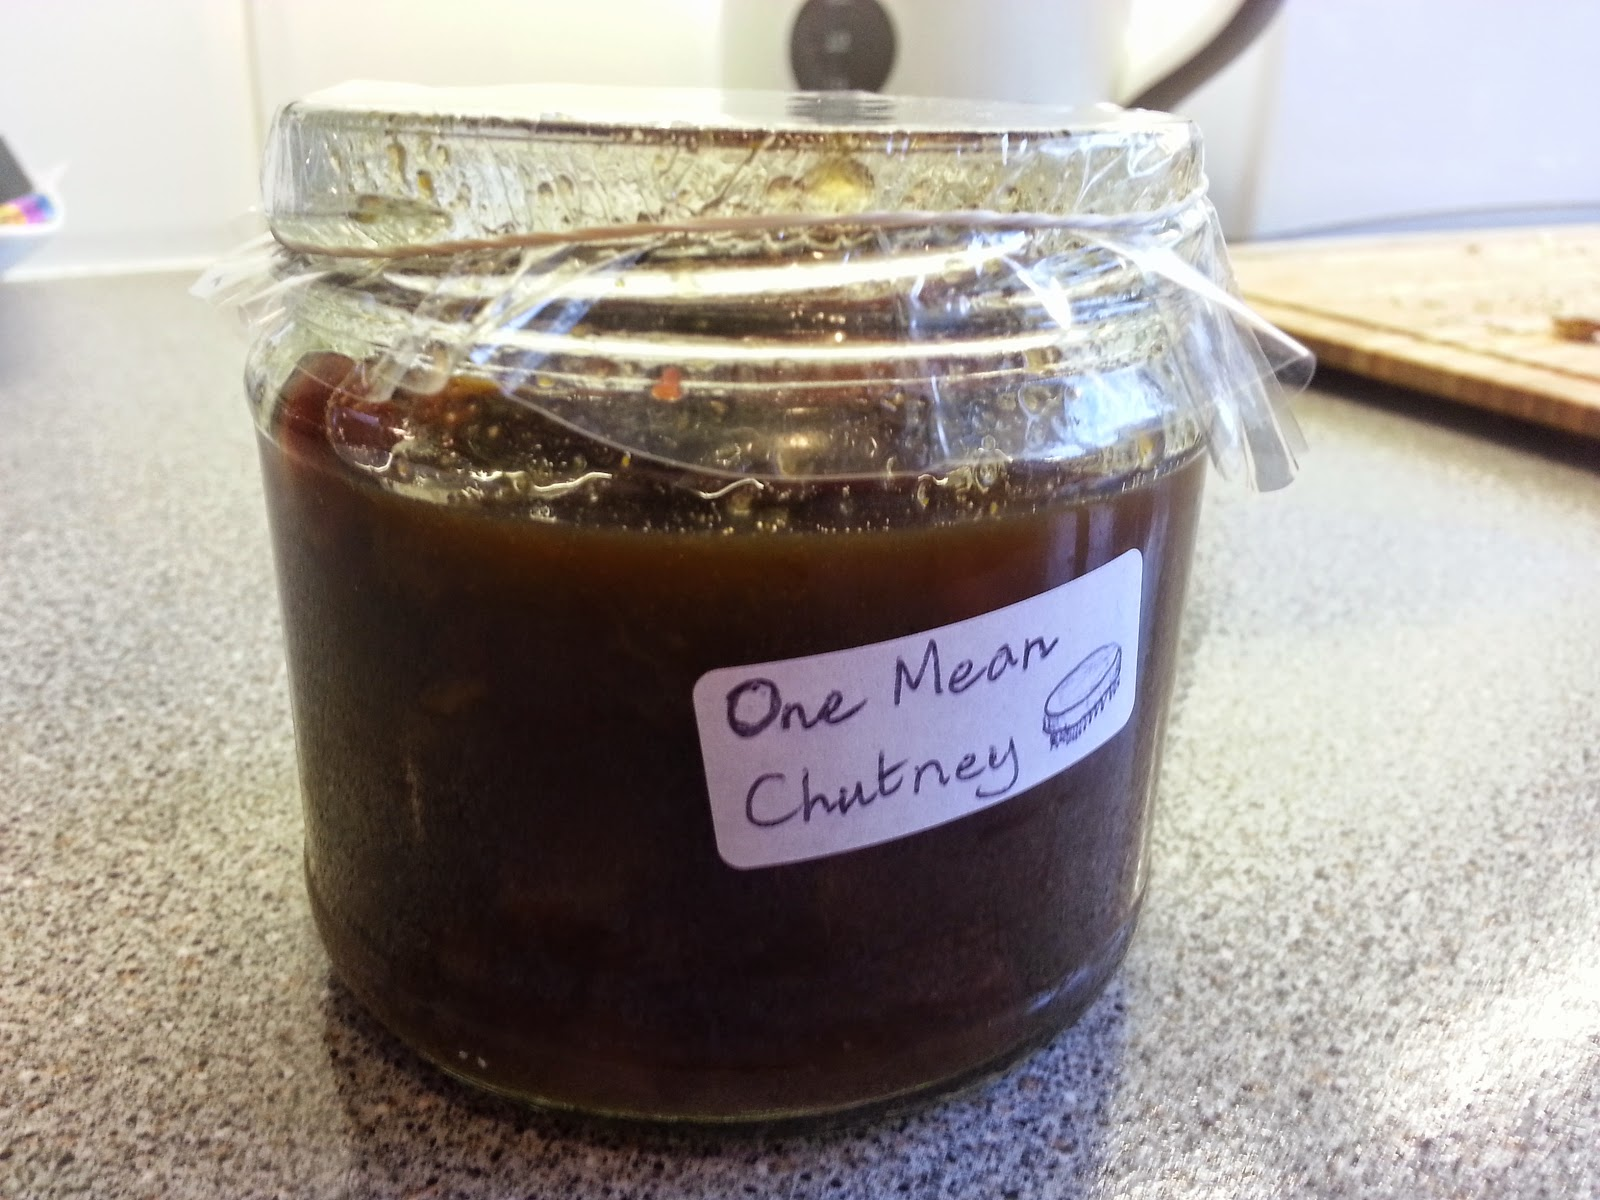 Homemade Indian Apple Chutney in a jar with handwritten label